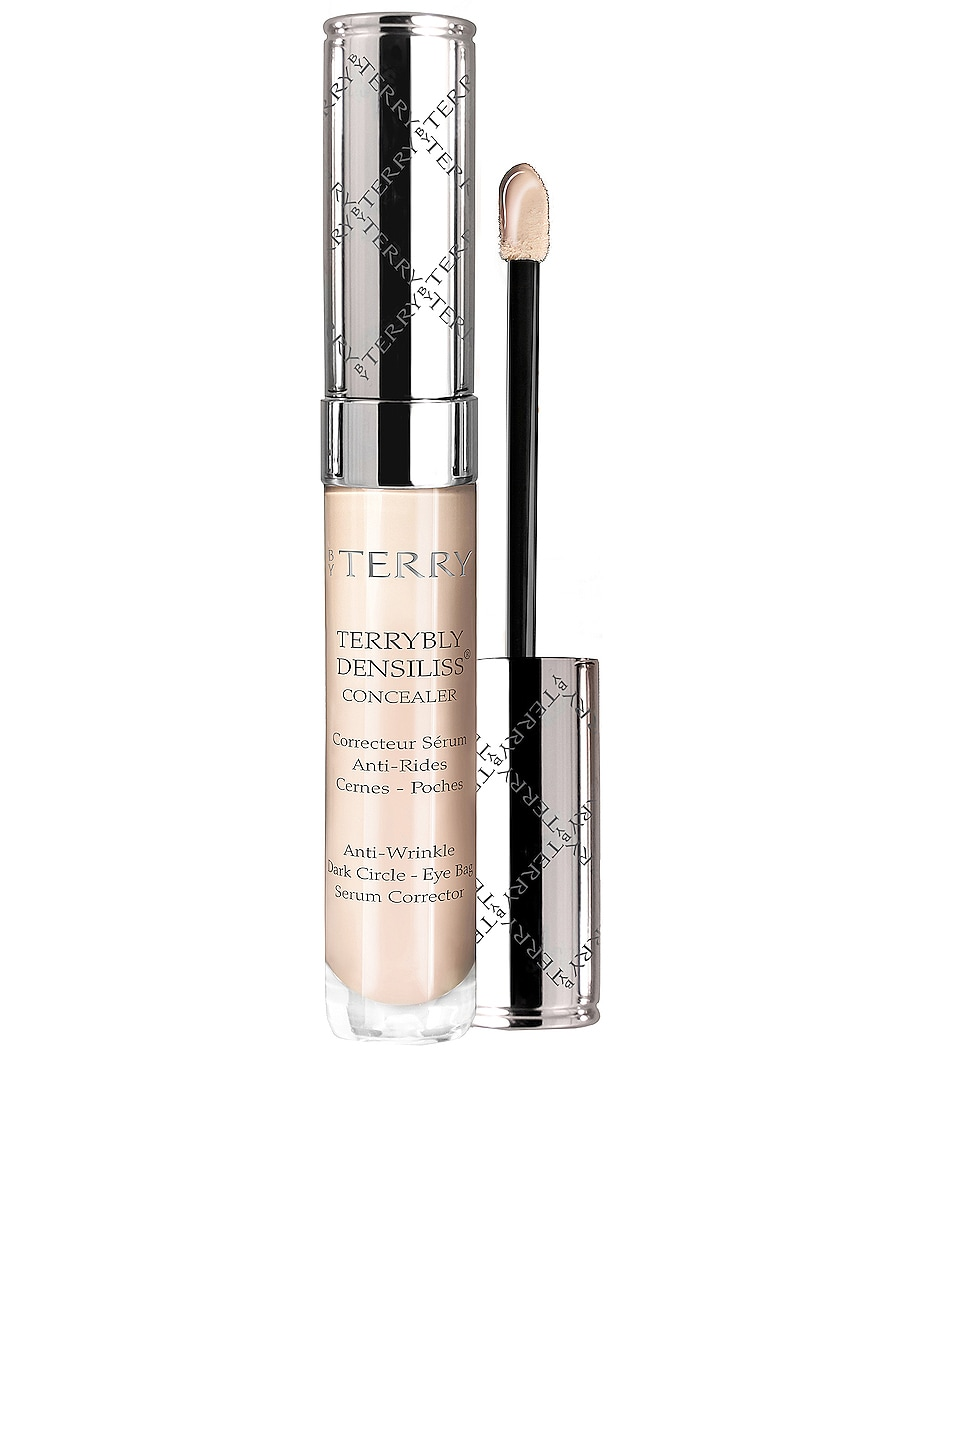 By Terry Terrybly Densiliss Concealer in Vanilla Beige